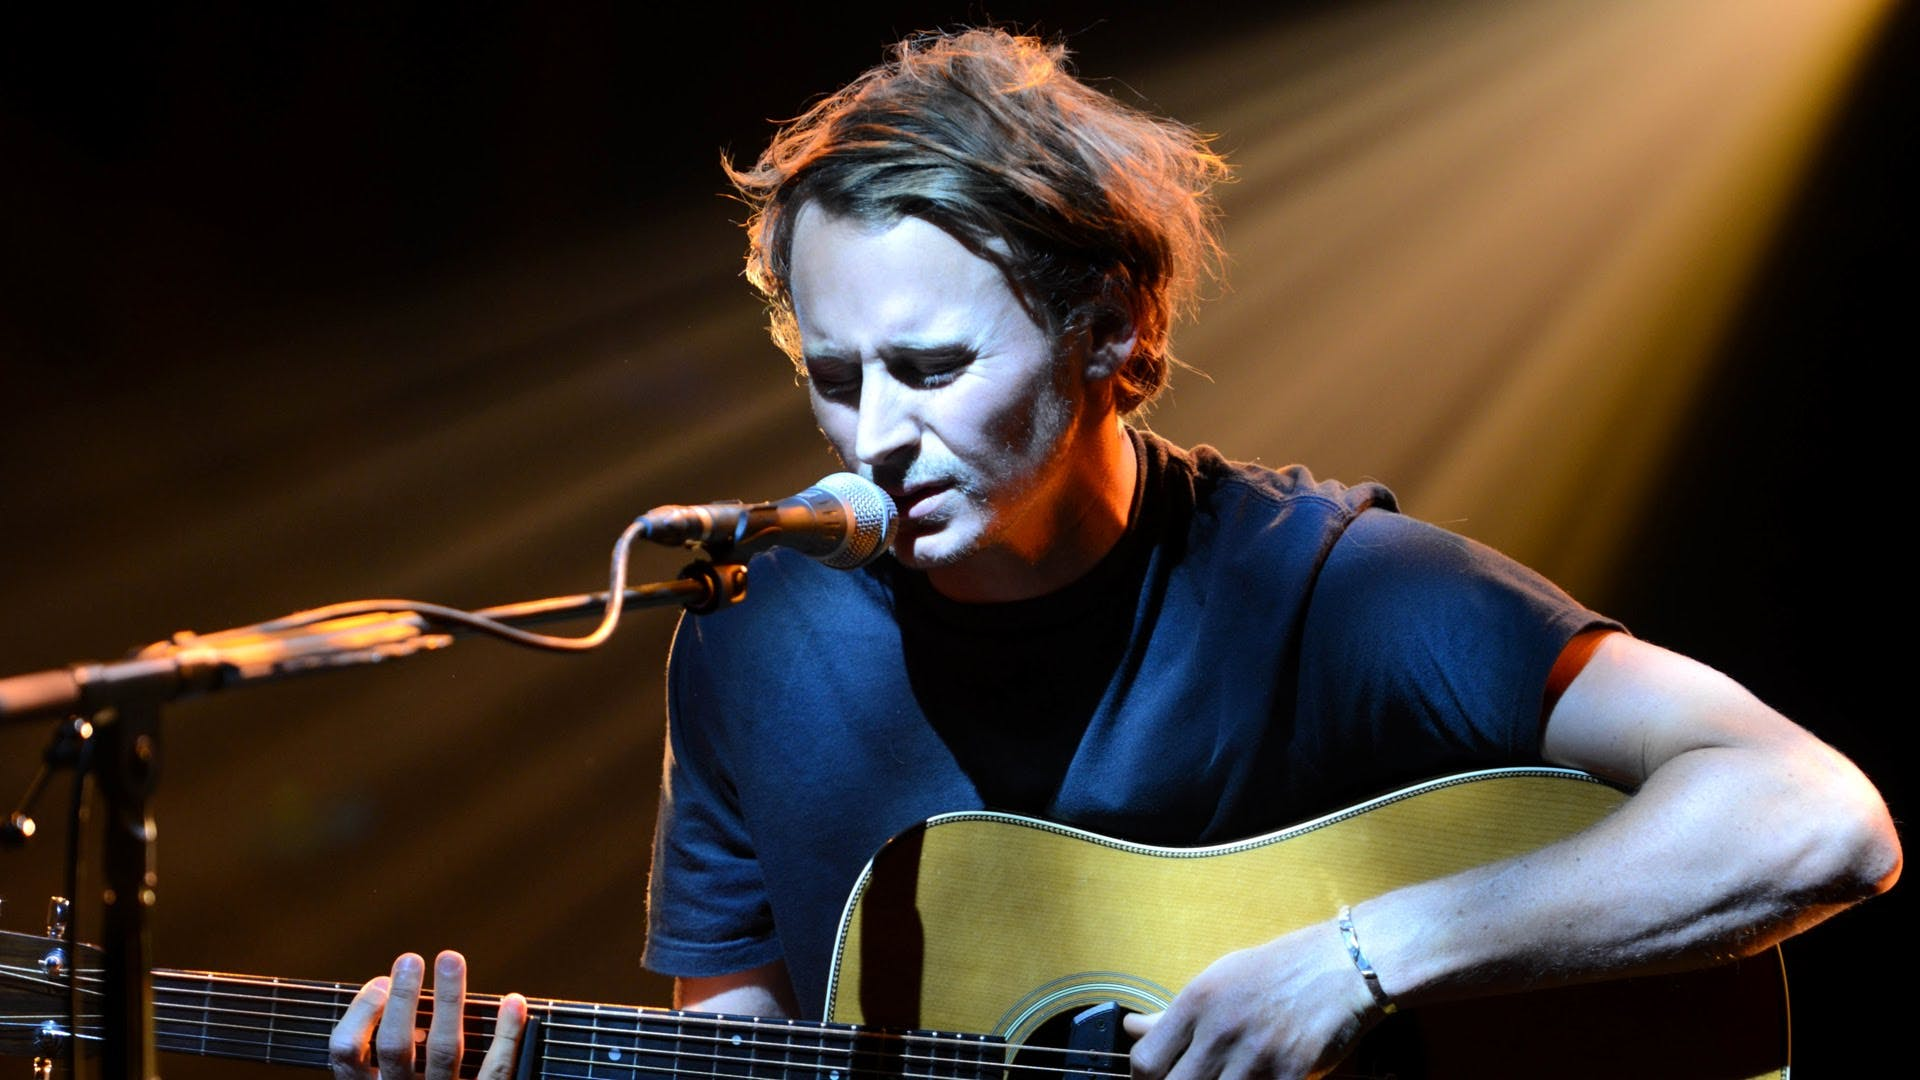 BEFORE YOU GO: BEN HOWARD